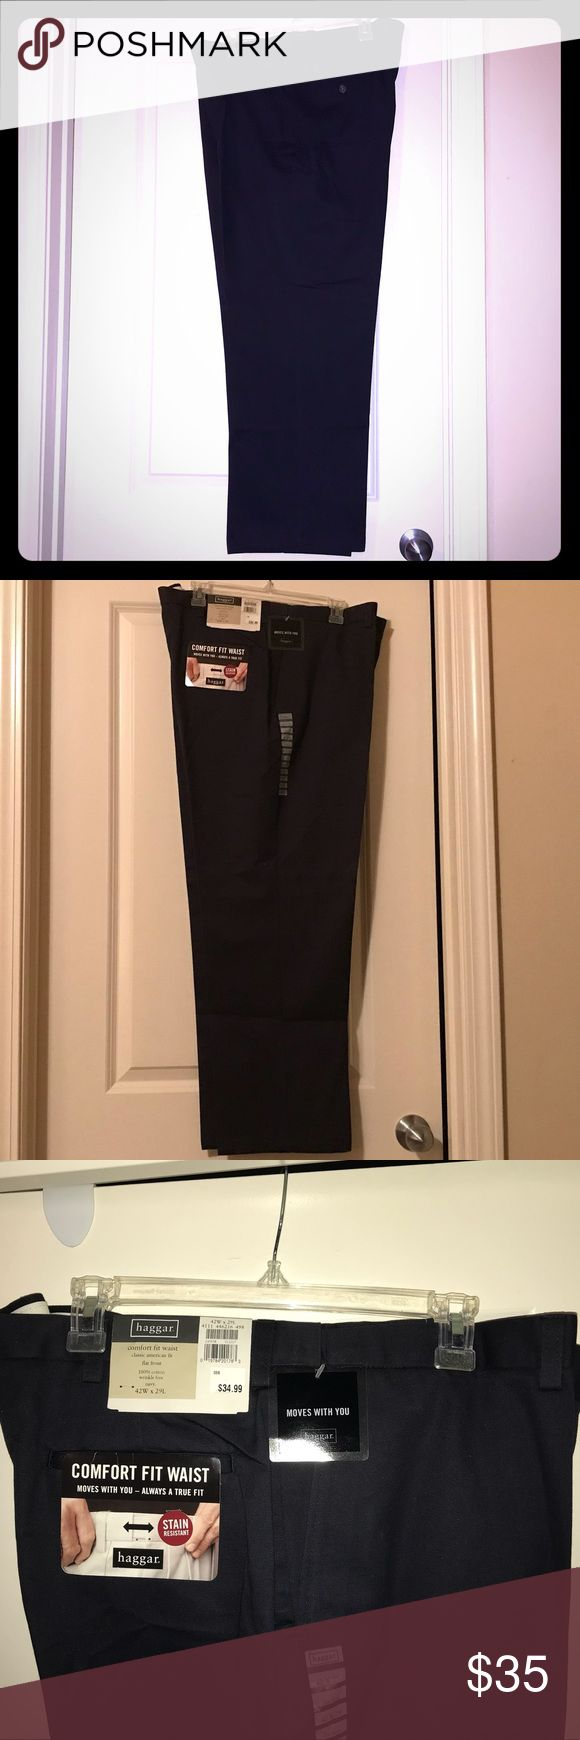 """💼 NWT! HAGGAR Navy Blue Men's Dress Pants HAGGAR 